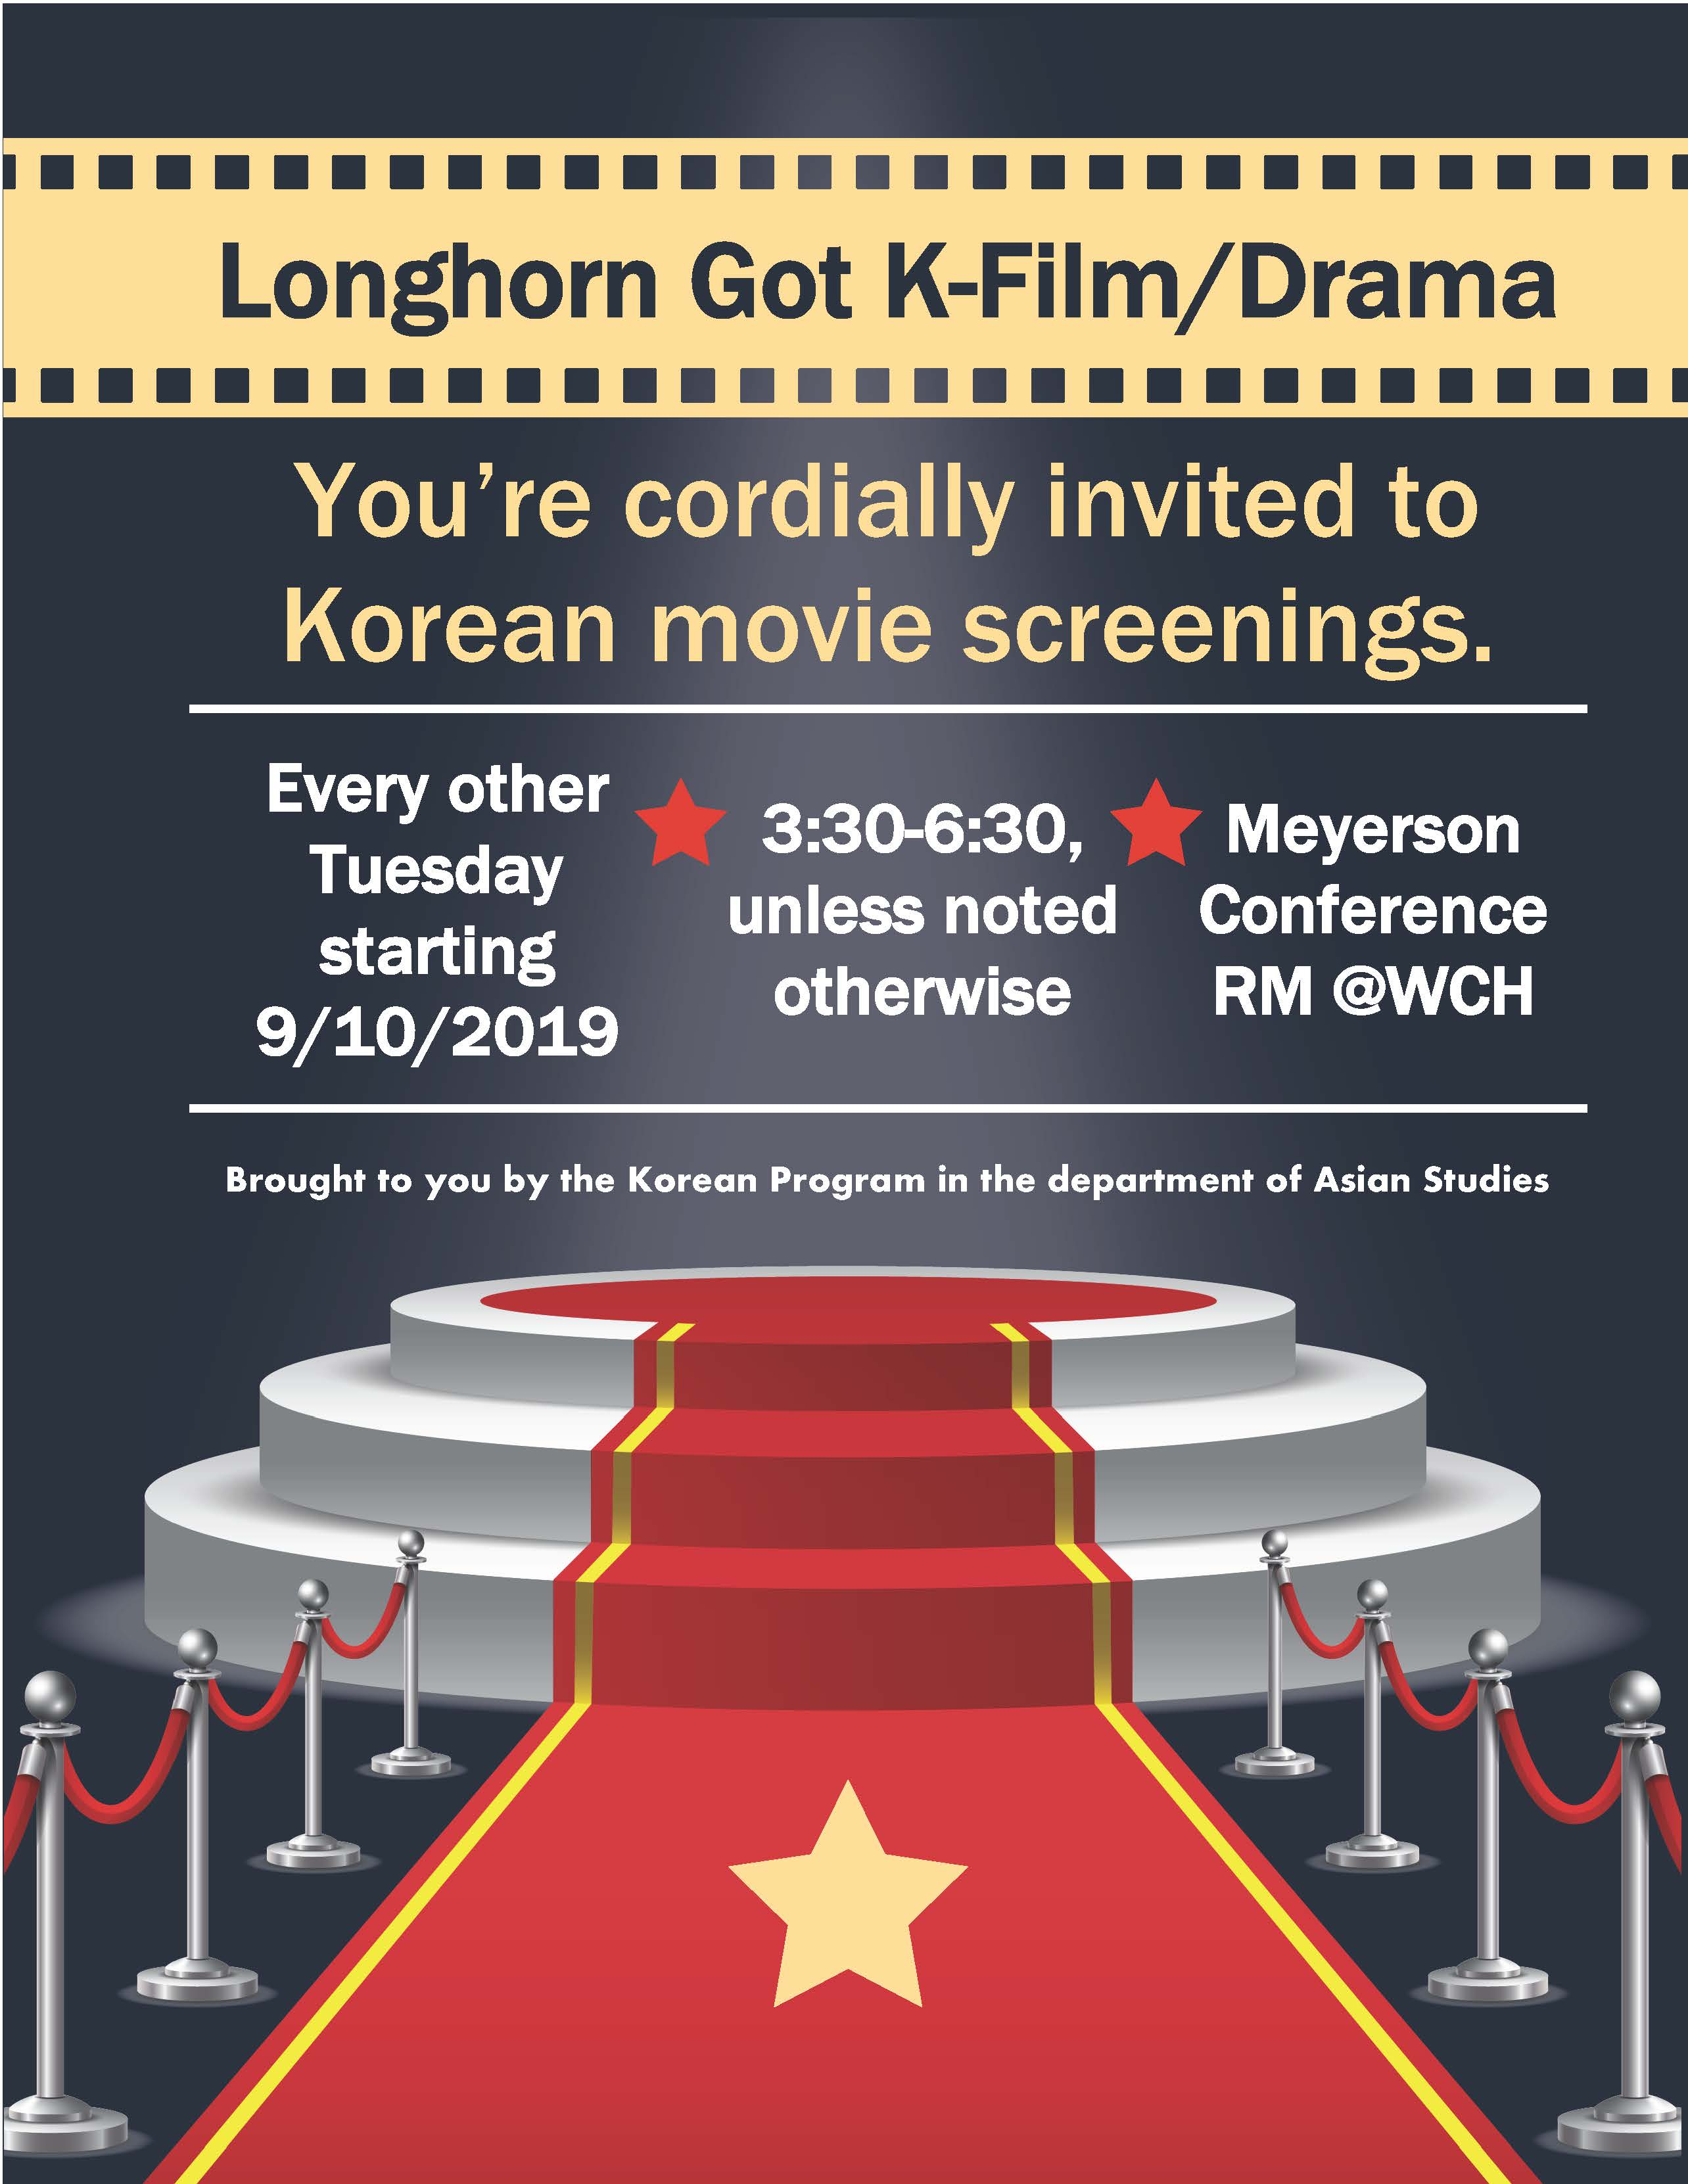 Longhorn Got K-Film/Drama